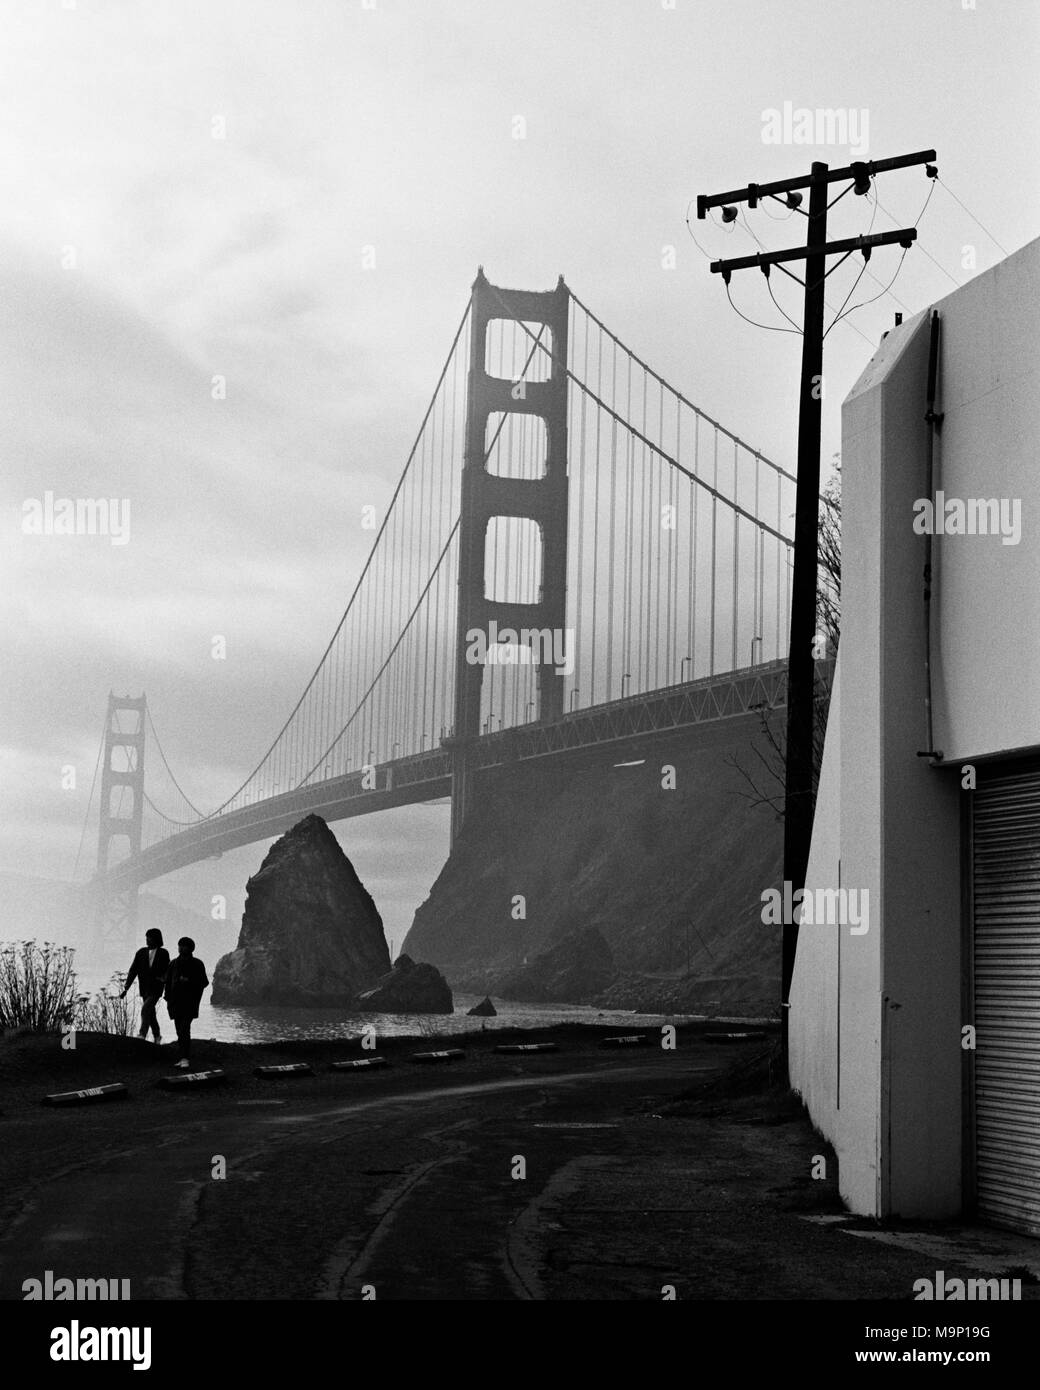 A silhouetted couple walking along the water with the Golden Gate Bridge in the background. Golden Gate National Recreation Area, Marin County, California. Stock Photo